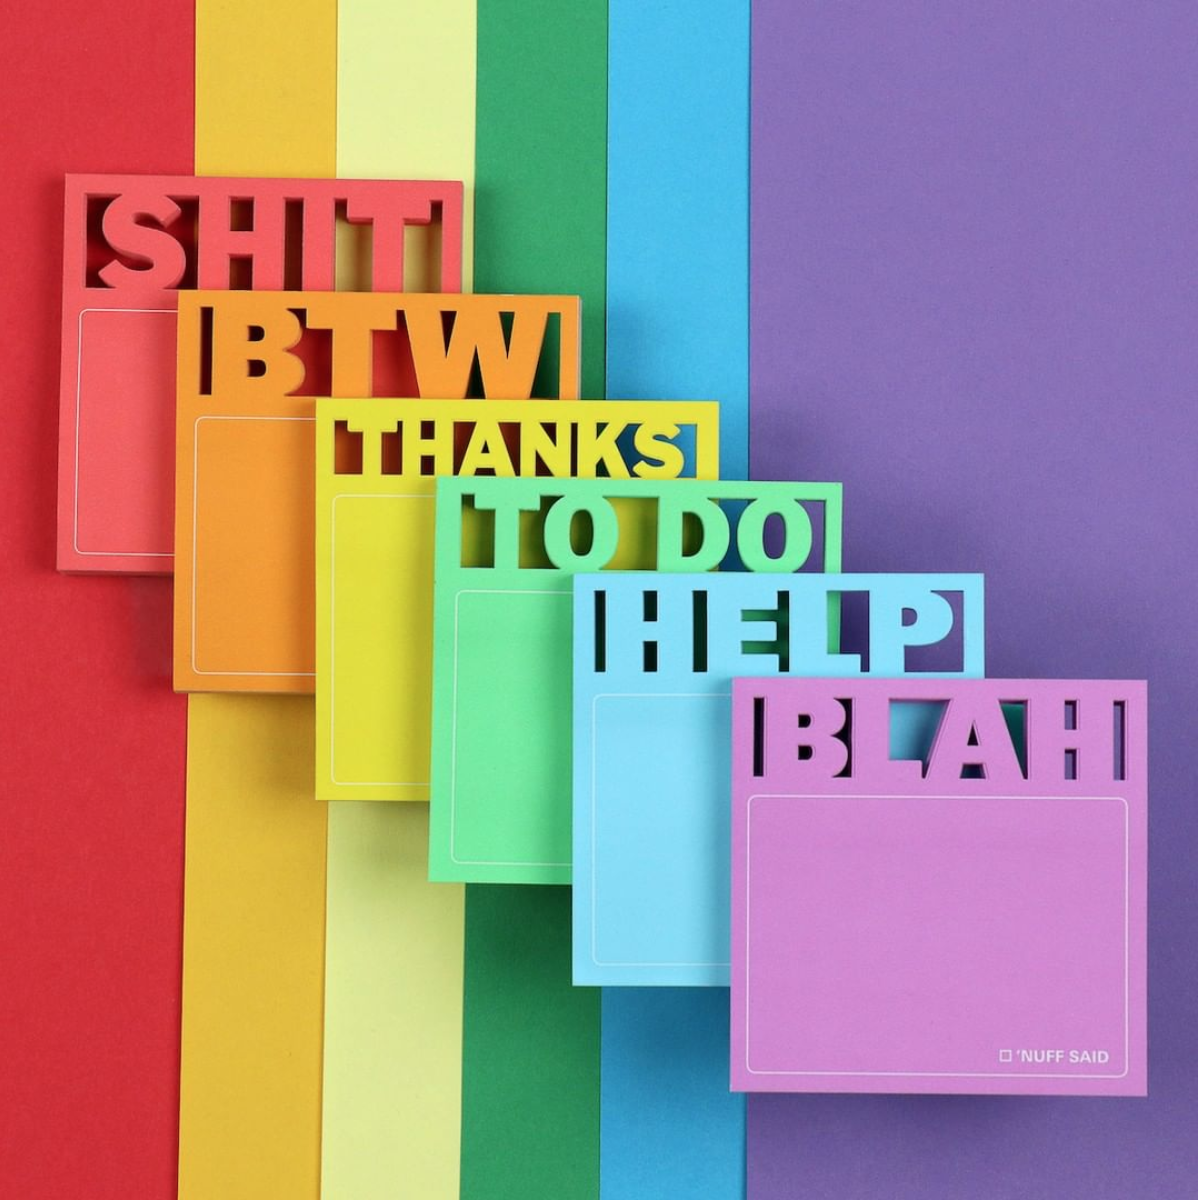 On a rainbow colored background the Die cut sticky notes are placed on top of each other.